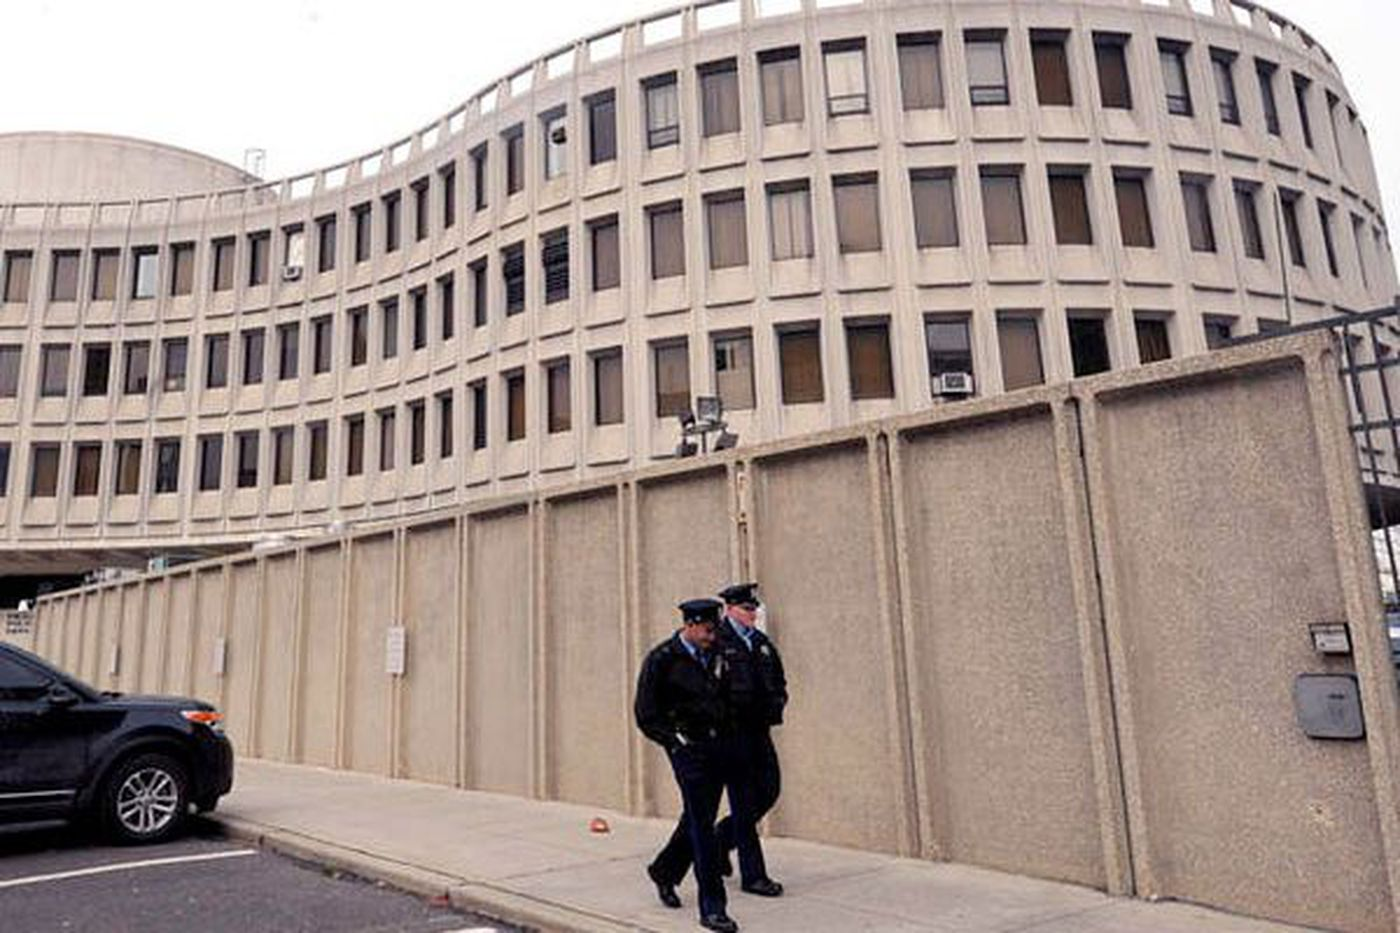 Philly detective fired as police, feds probe conduct